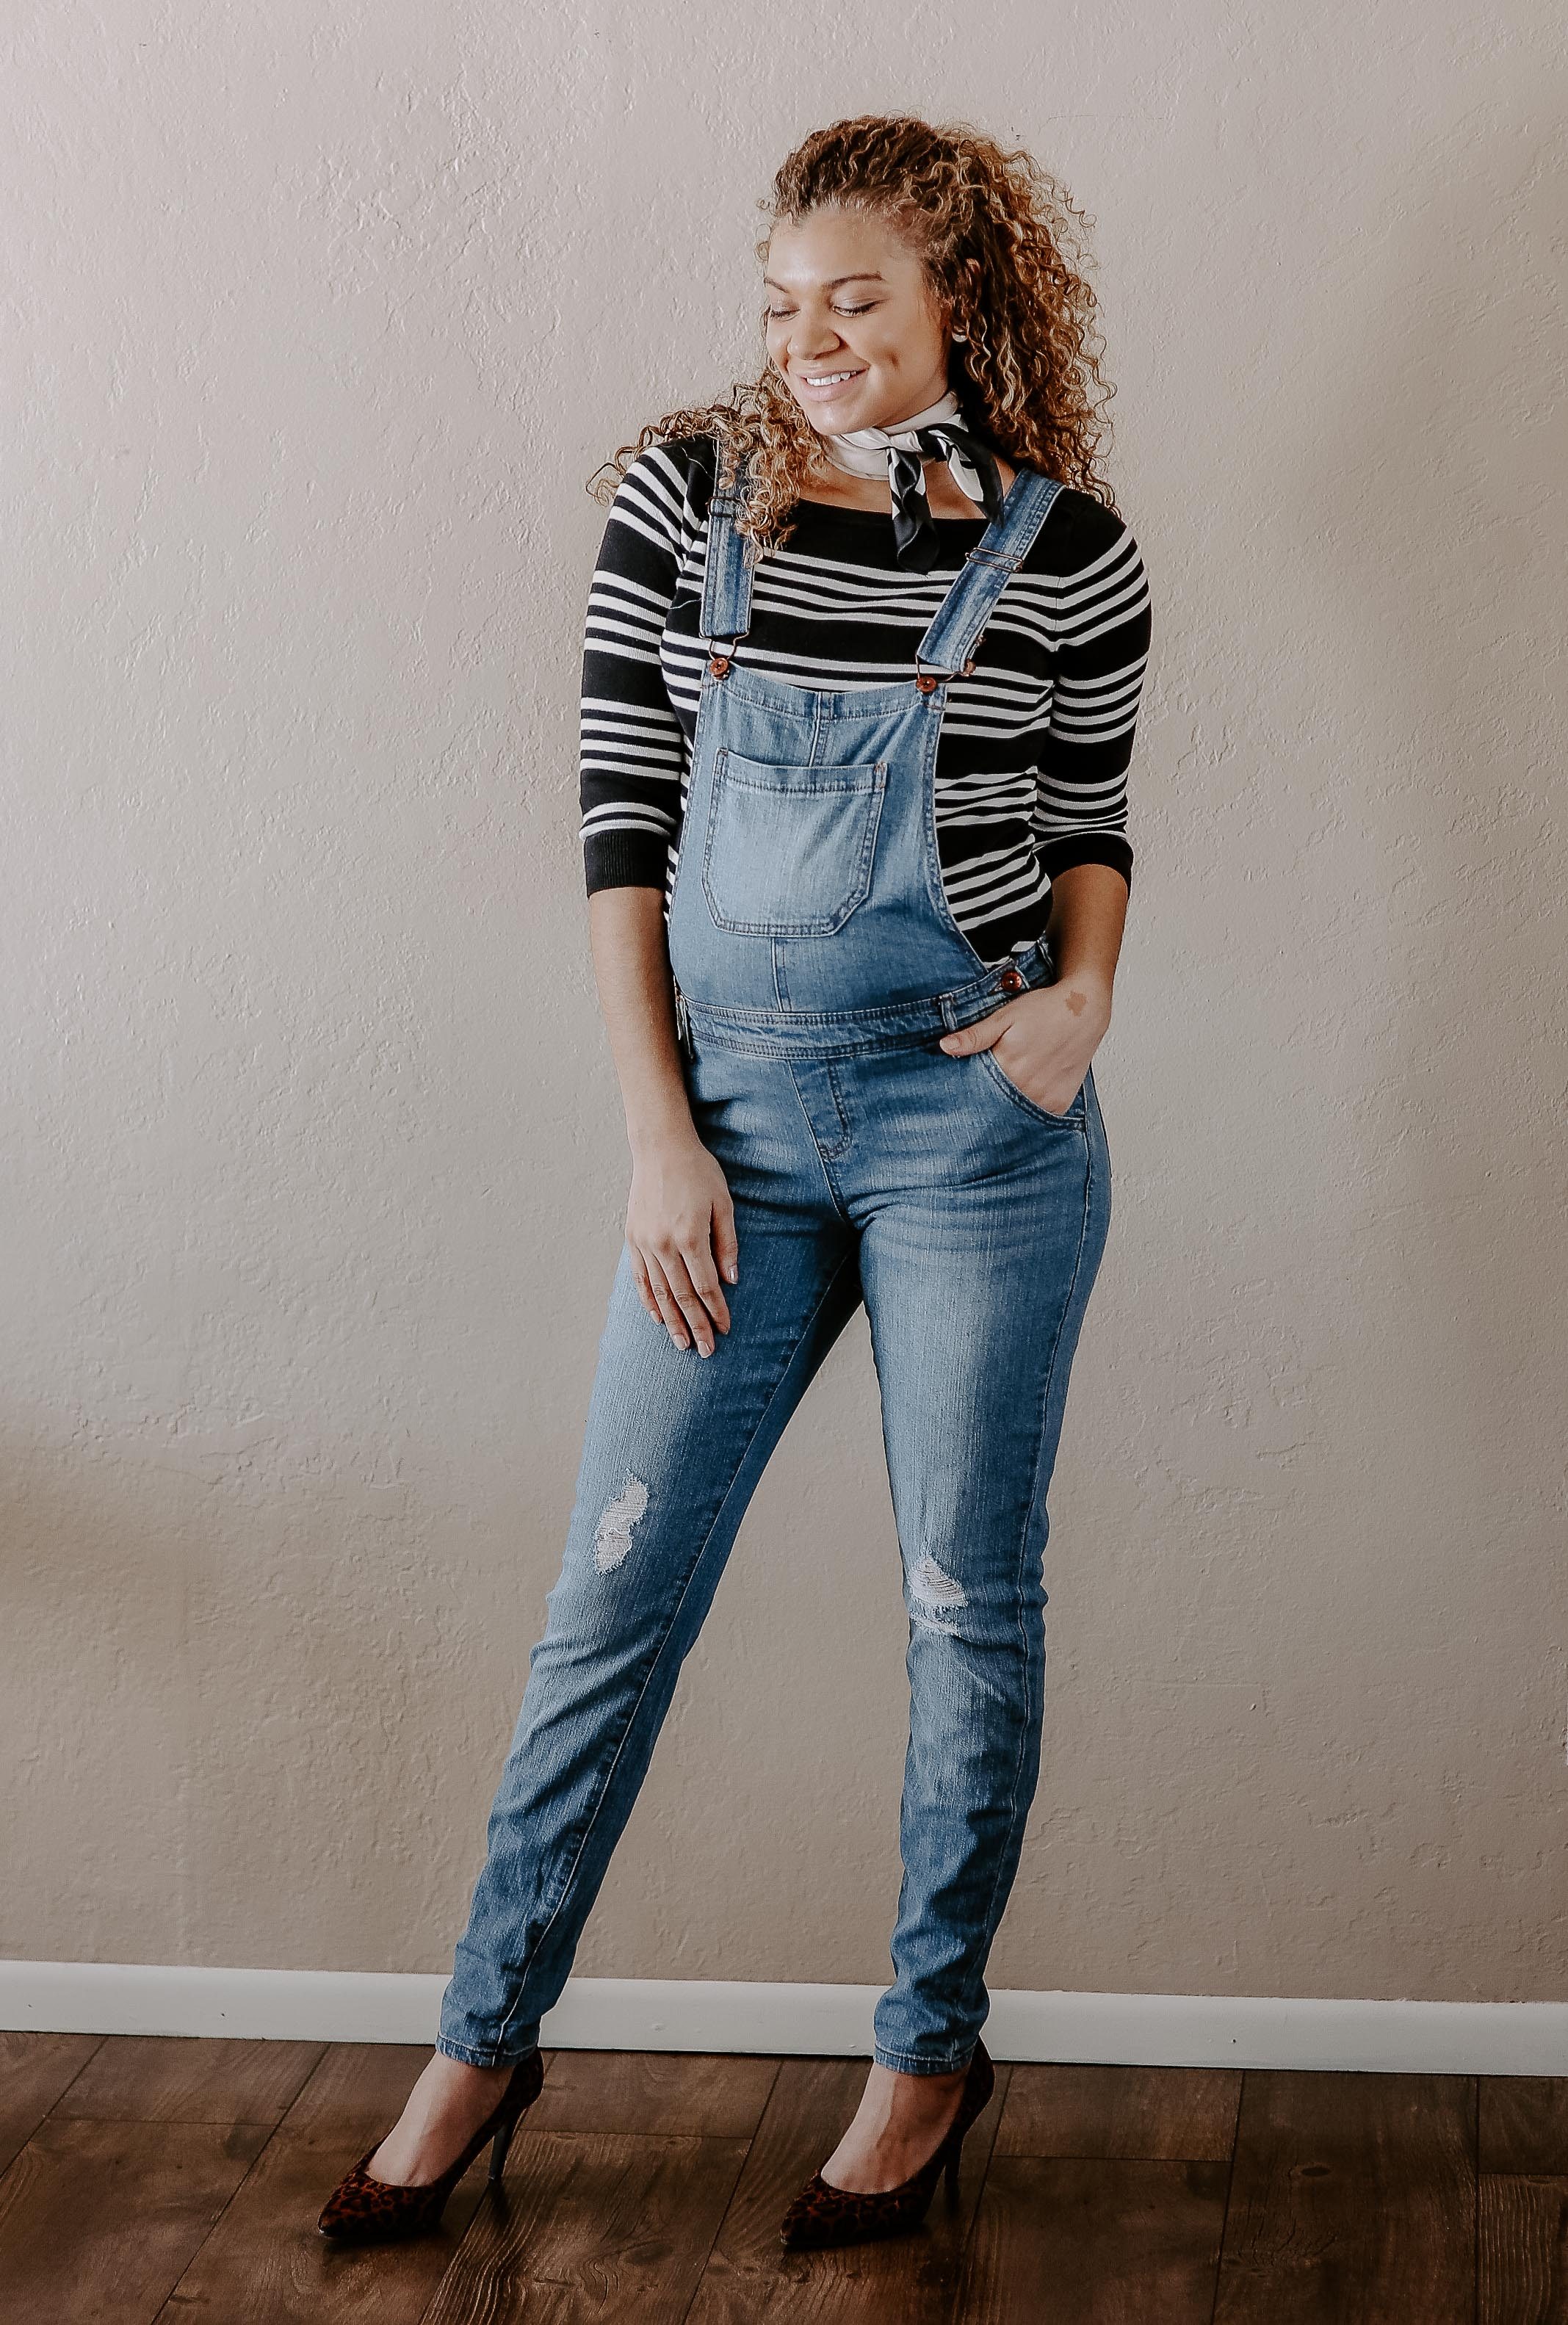 overalls maternity outfit